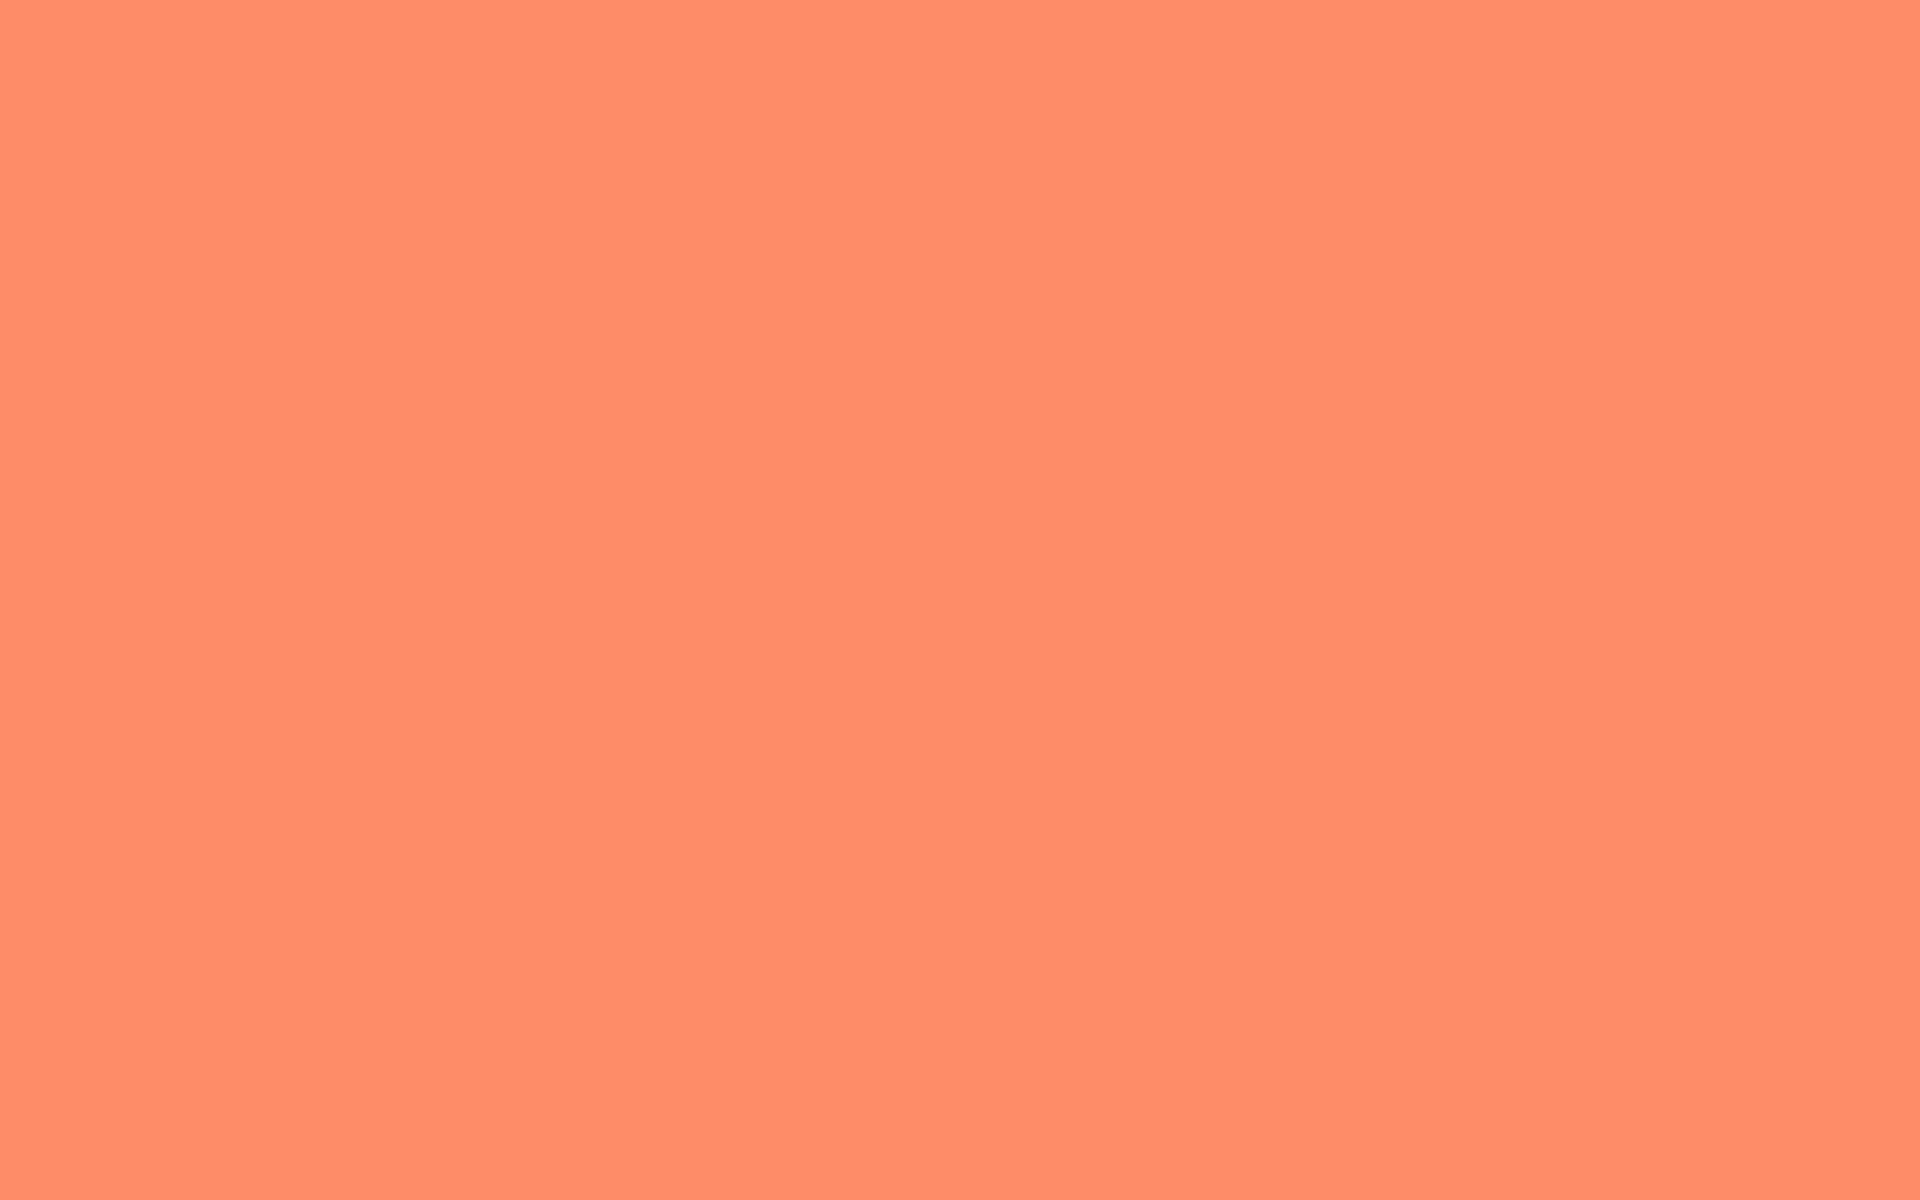 1920x1200 Salmon Solid Color Background